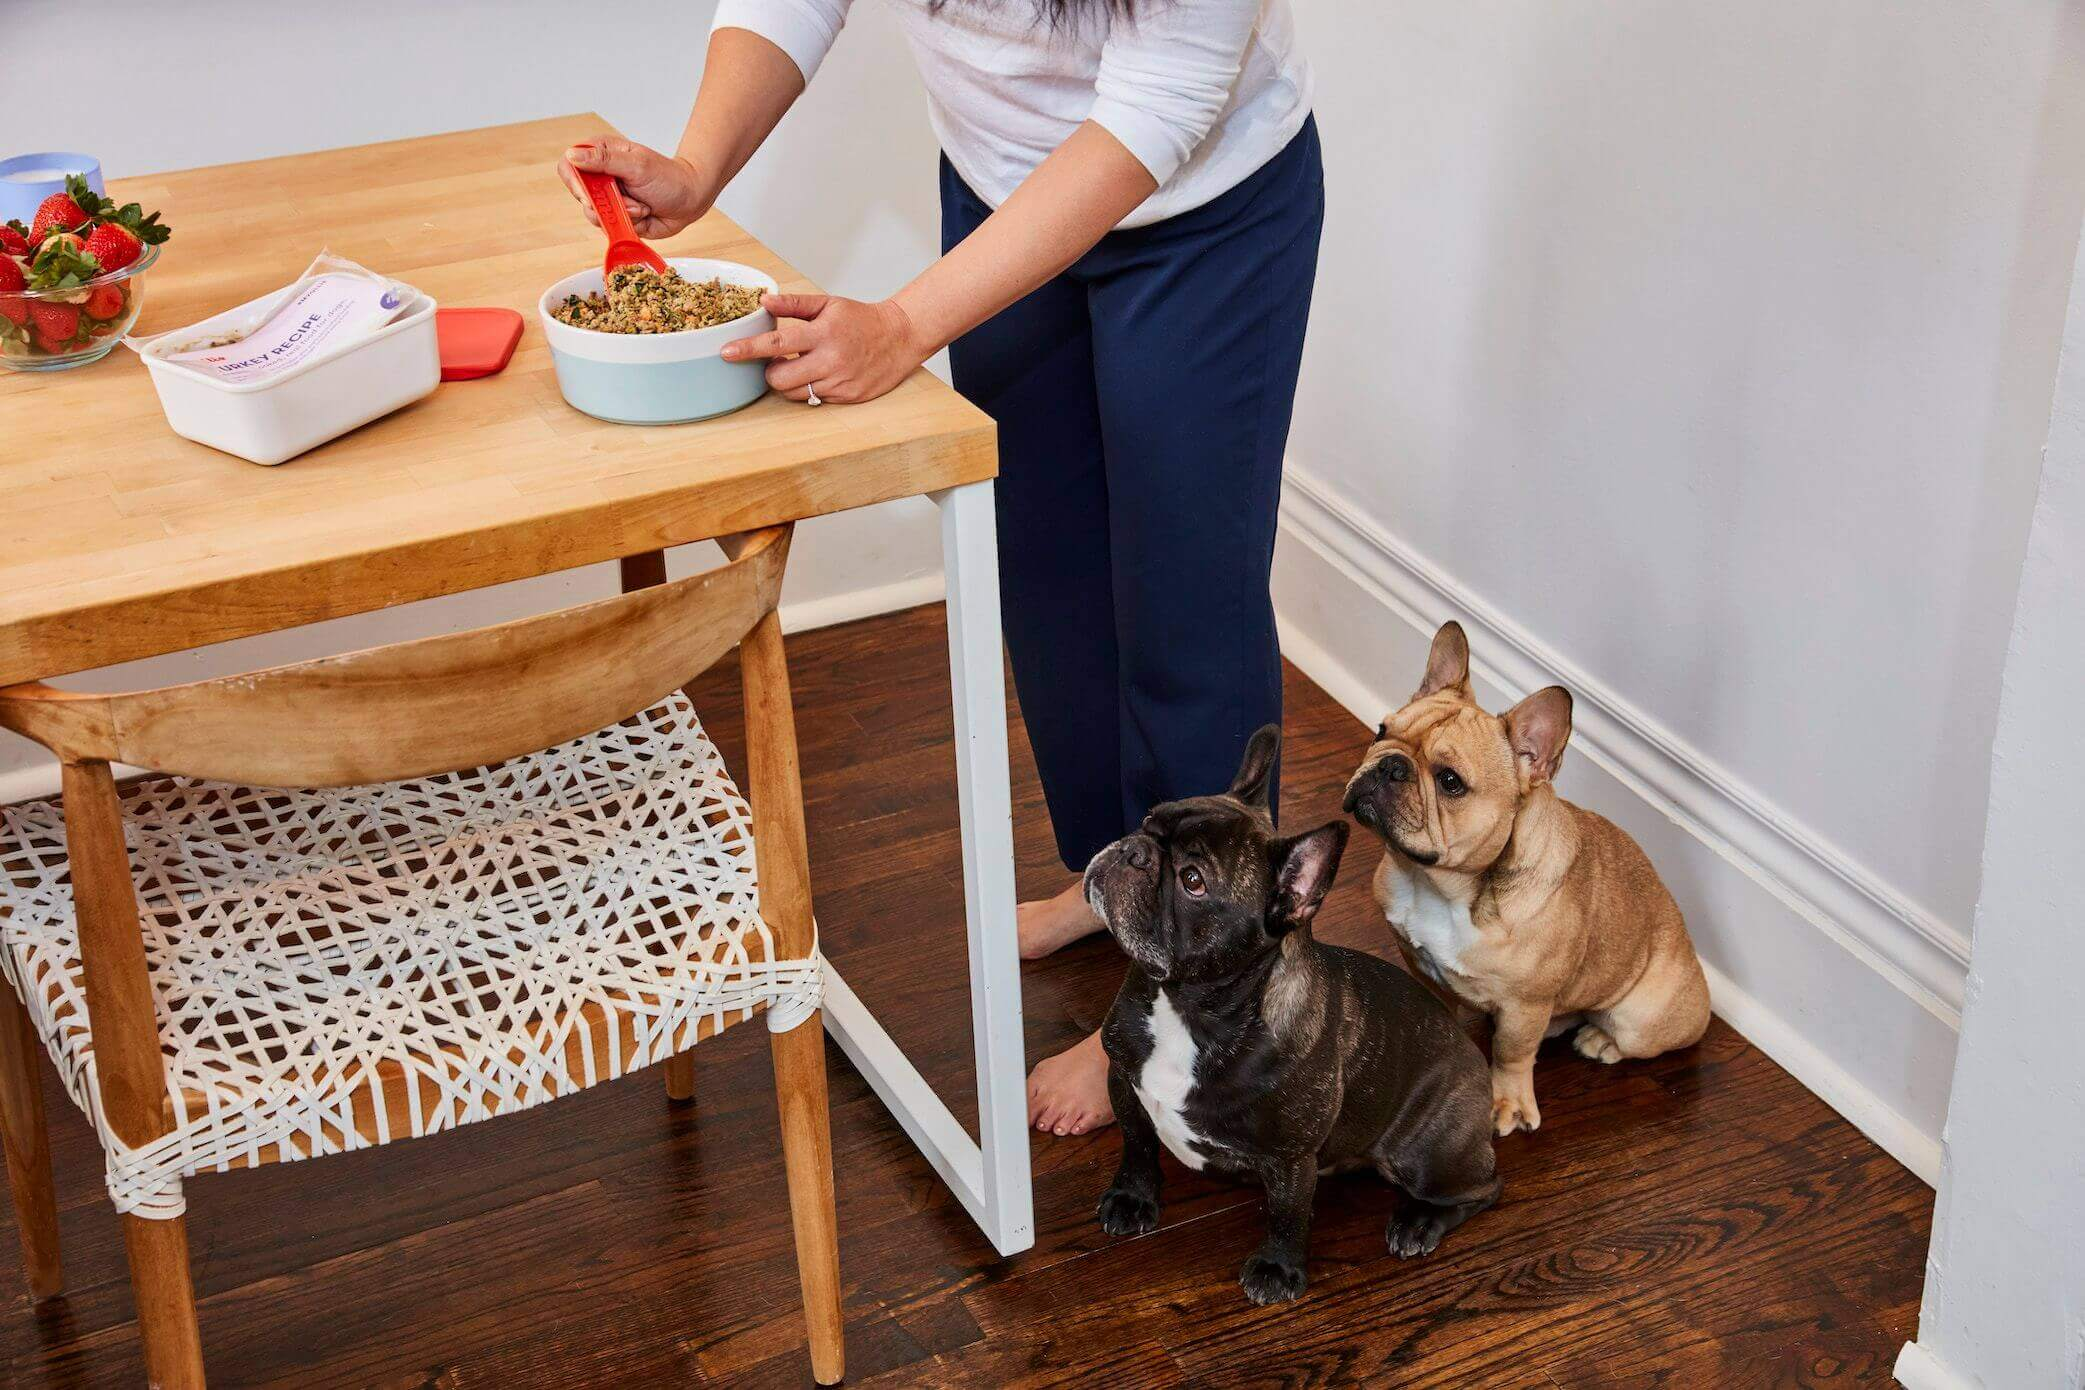 nutritionally-balanced-dog-food-for-all-life-stages